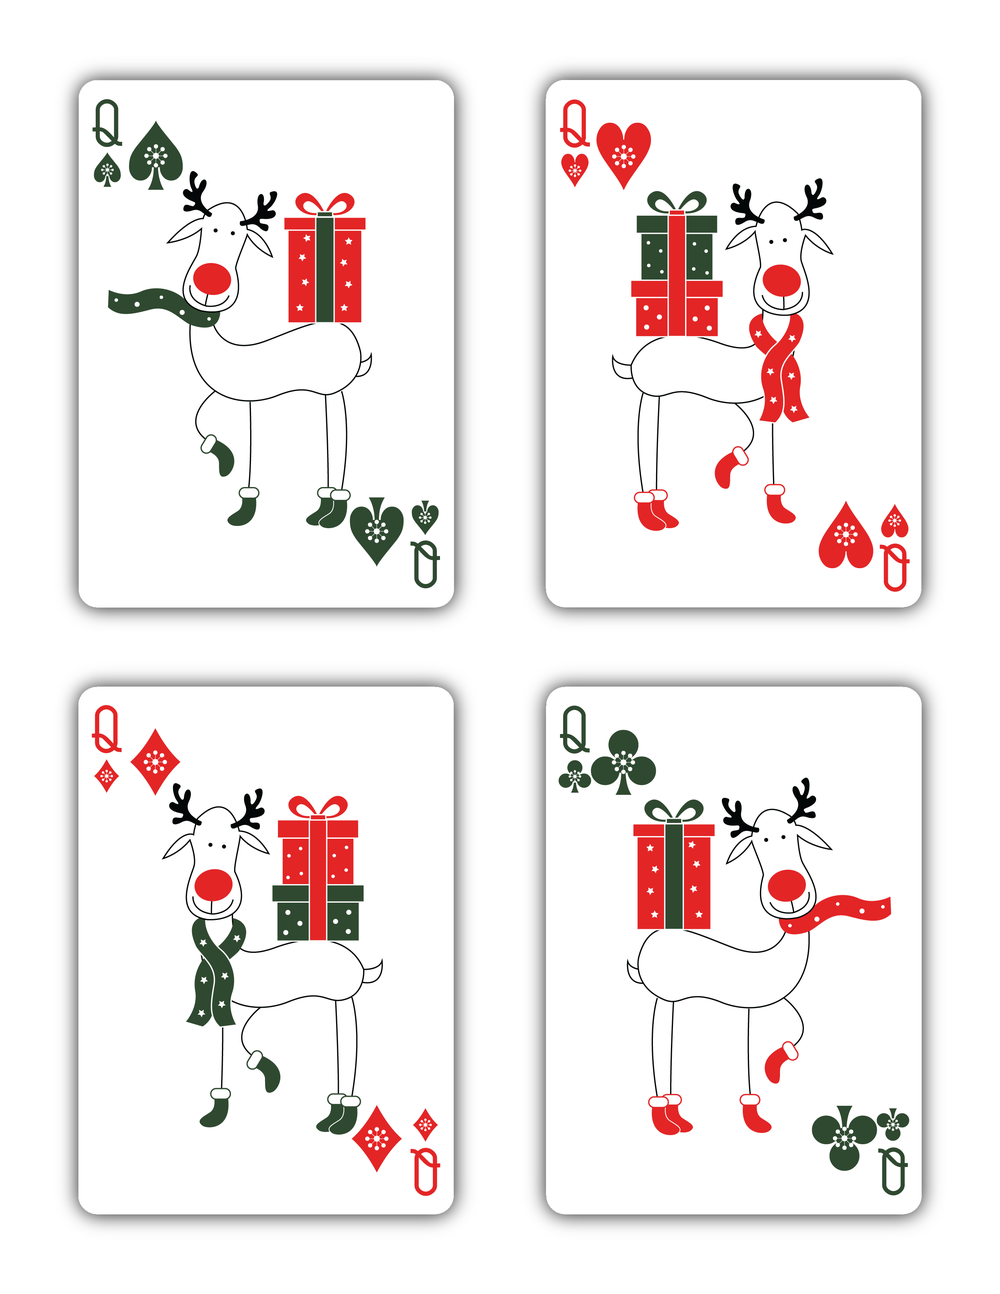 Quot Christmas Quot Playing Cards 2015 Printed By Uspcc Natalia